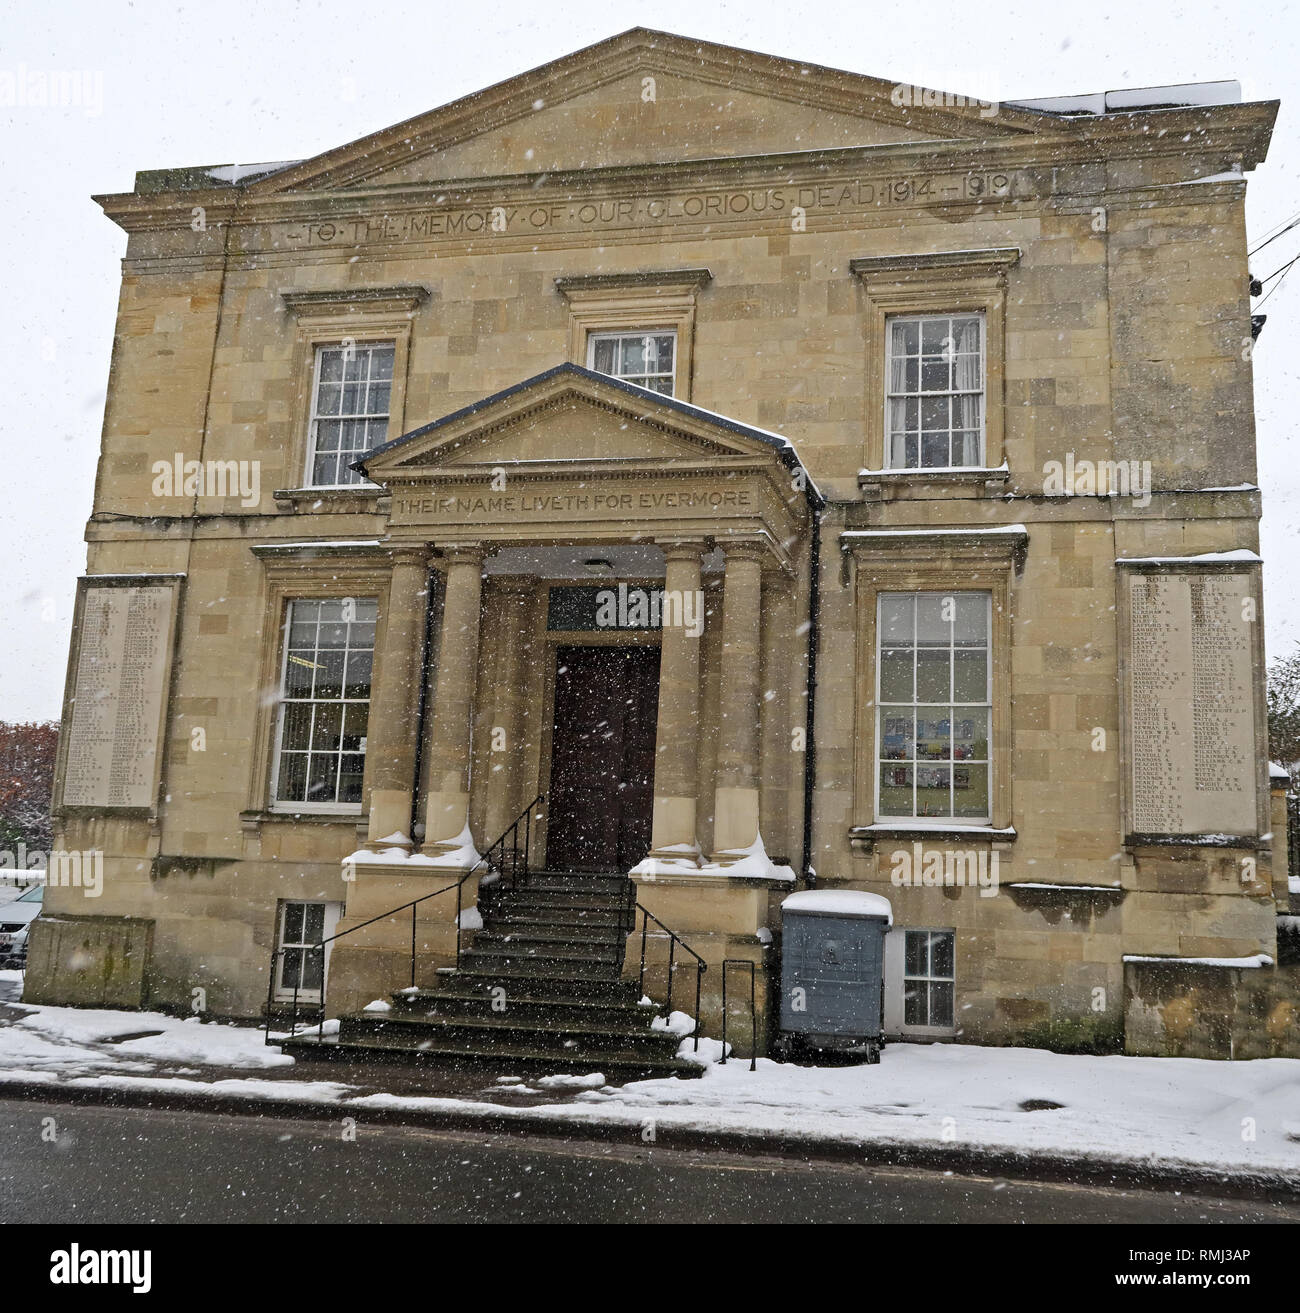 Apsley Hall, Old Hospital Annexe, Winter snow Cirencester town centre - Stock Image